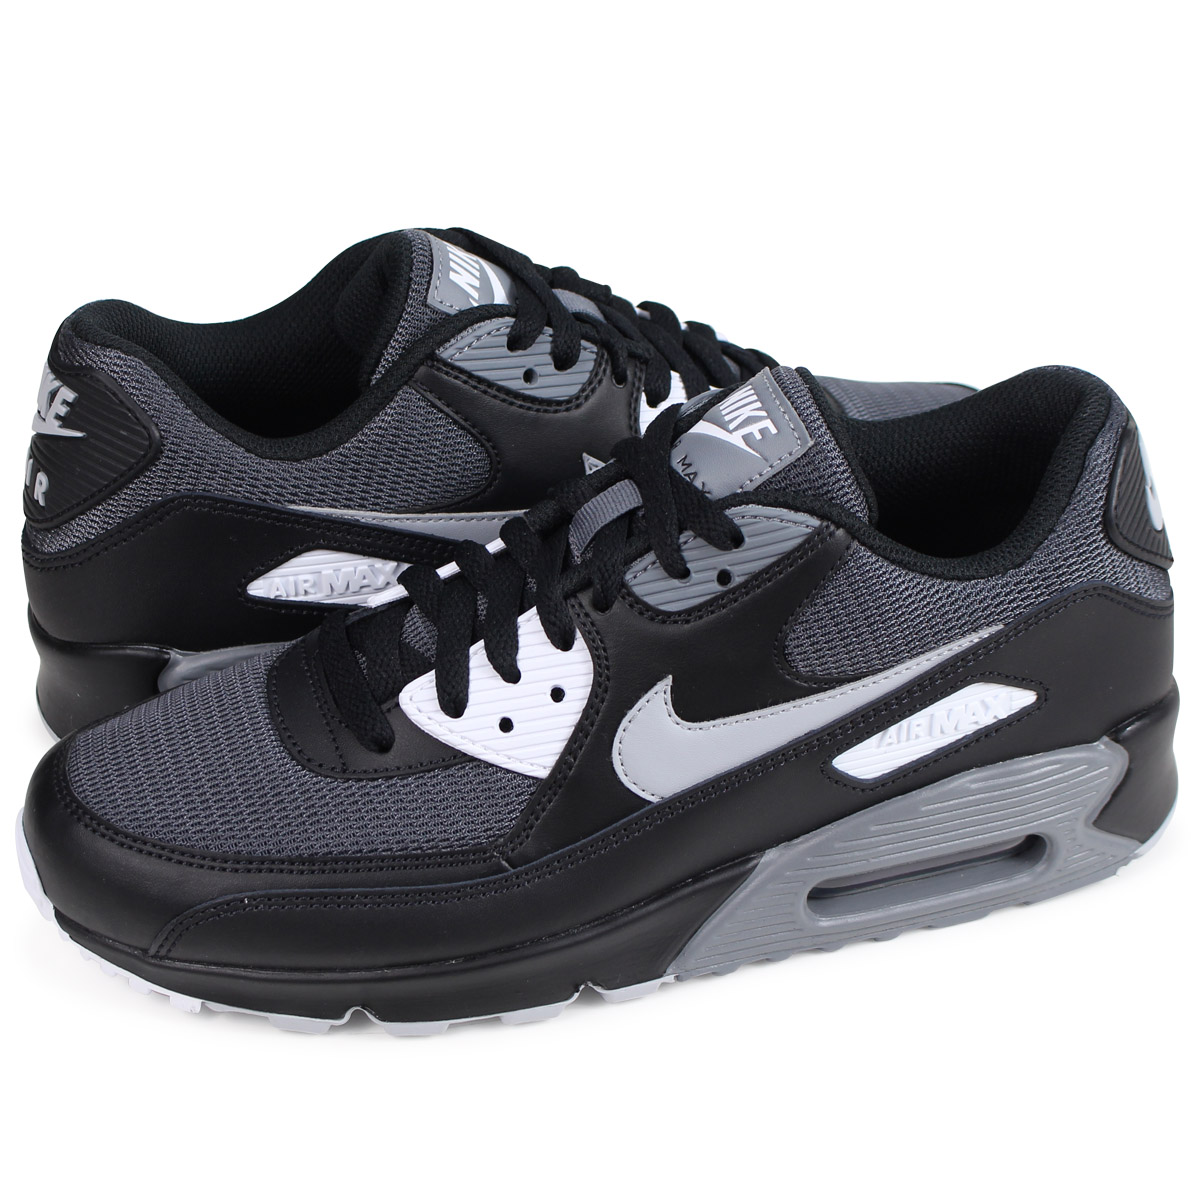 cheap for discount fa6be 06b29 NIKE AIR MAX 90 ESSENTIAL Kie Ney AMAX 90 essential sneakers men gap Dis  AJ1285-003 black [load planned Shinnyu load in reservation product 3/30 ...